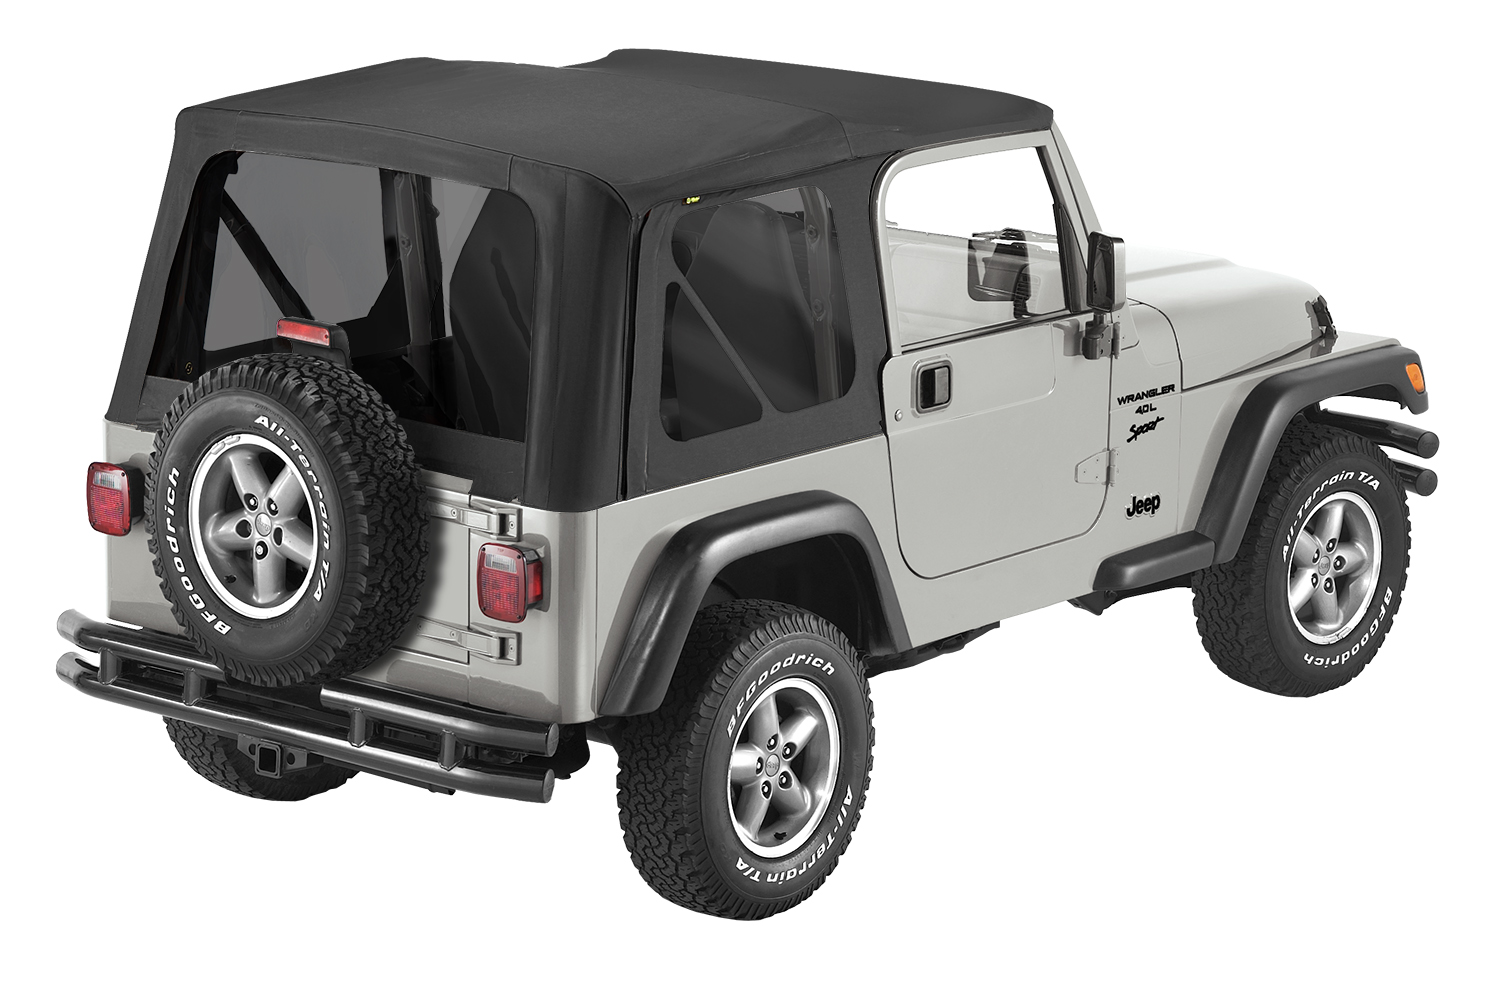 Jeep TJ Replace-A-Top Sailcloth For Full Steel Doors Tinted Windows 97-02 Jeep Wrangler TJ Black Kit Bestop